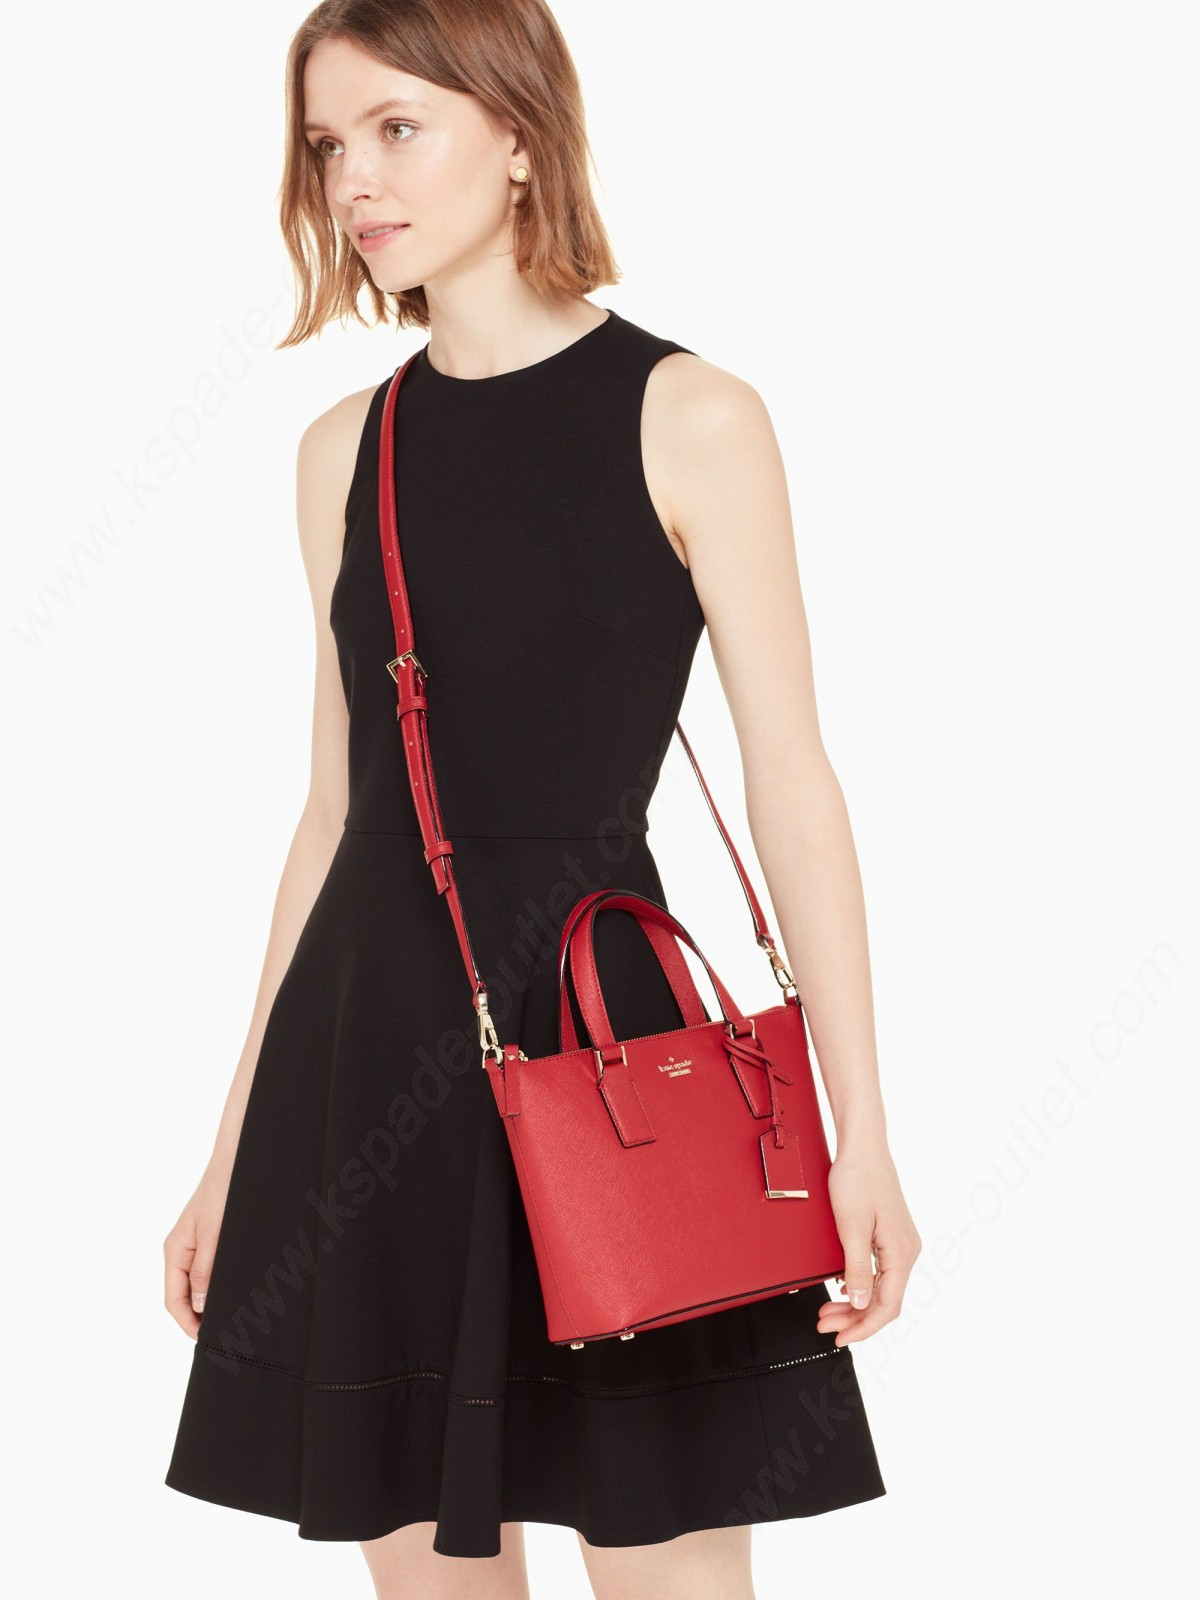 Kate Spade Women Handbags Cameron Street Lucie Crossbody - -1